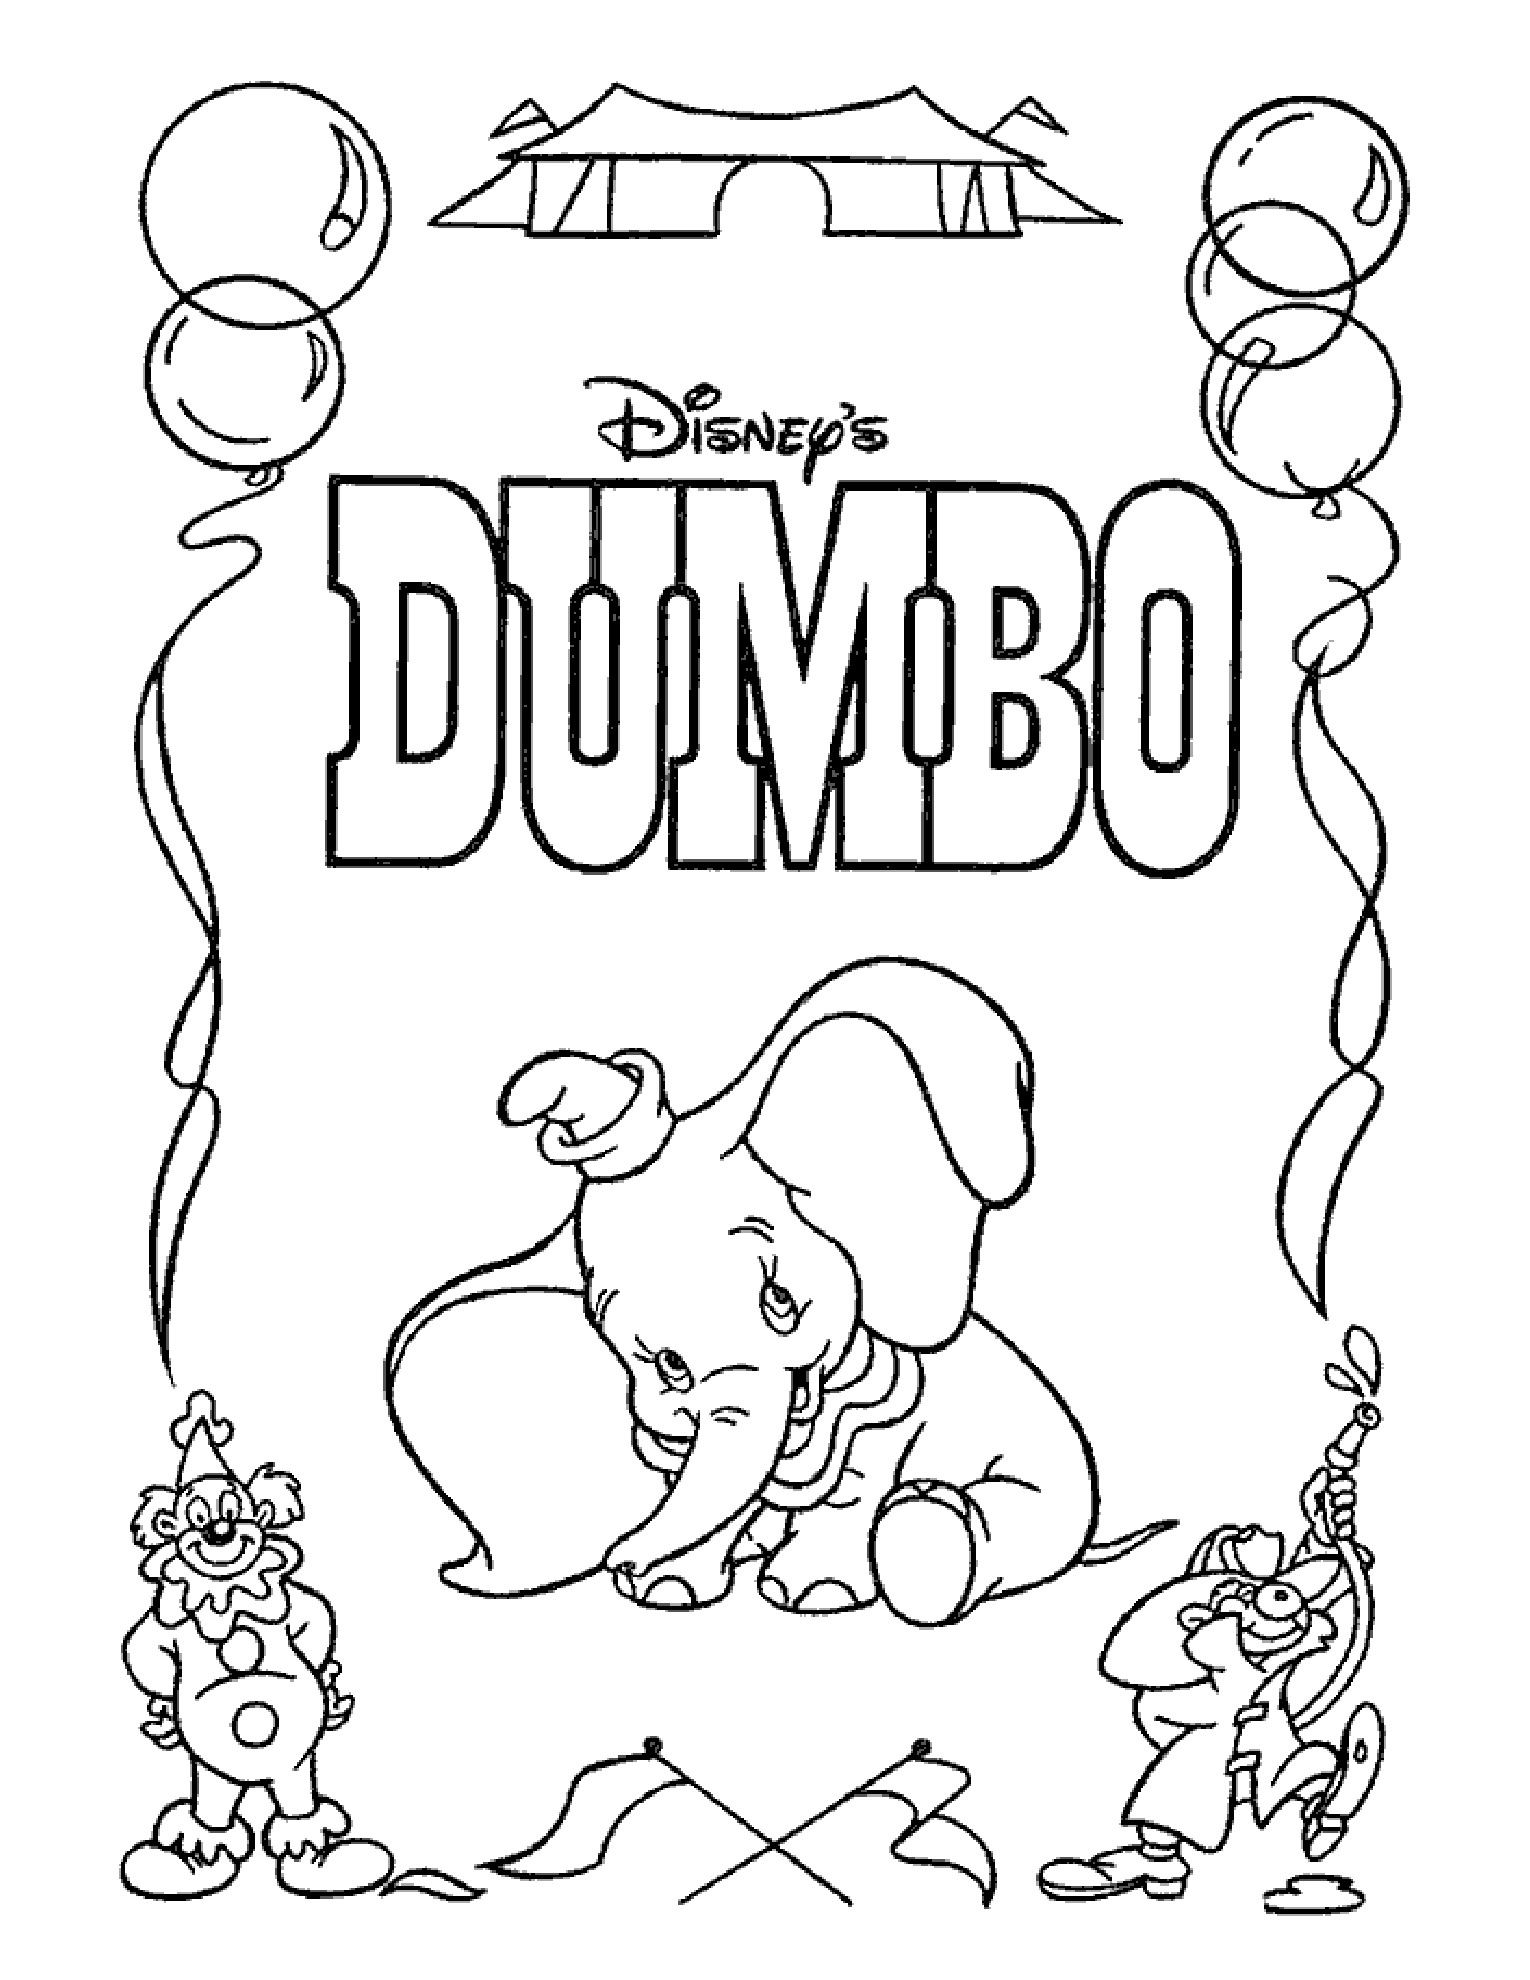 Pin By William Mike Groeneveld On Disney Coloring Pages Movie Covers Disney Coloring Sheets Disney Coloring Pages Cartoon Coloring Pages